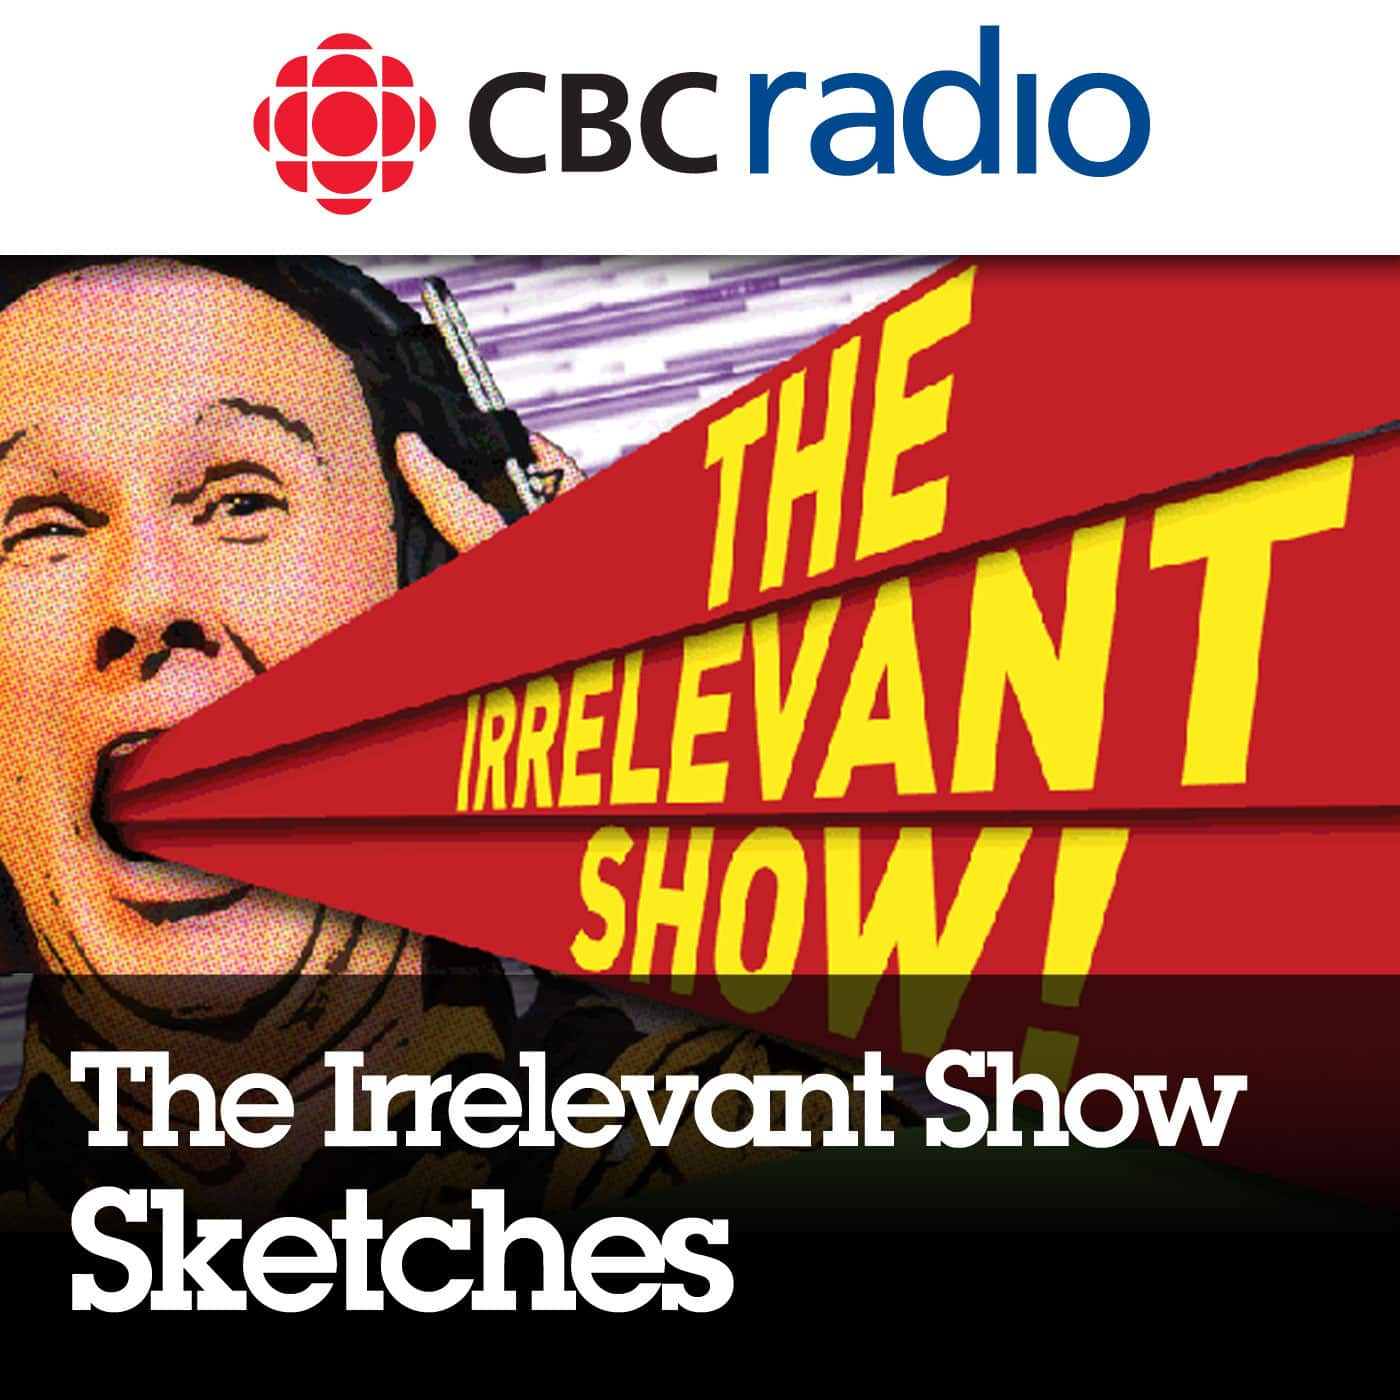 The Irrelevant Show: Sketches from CBC Radio